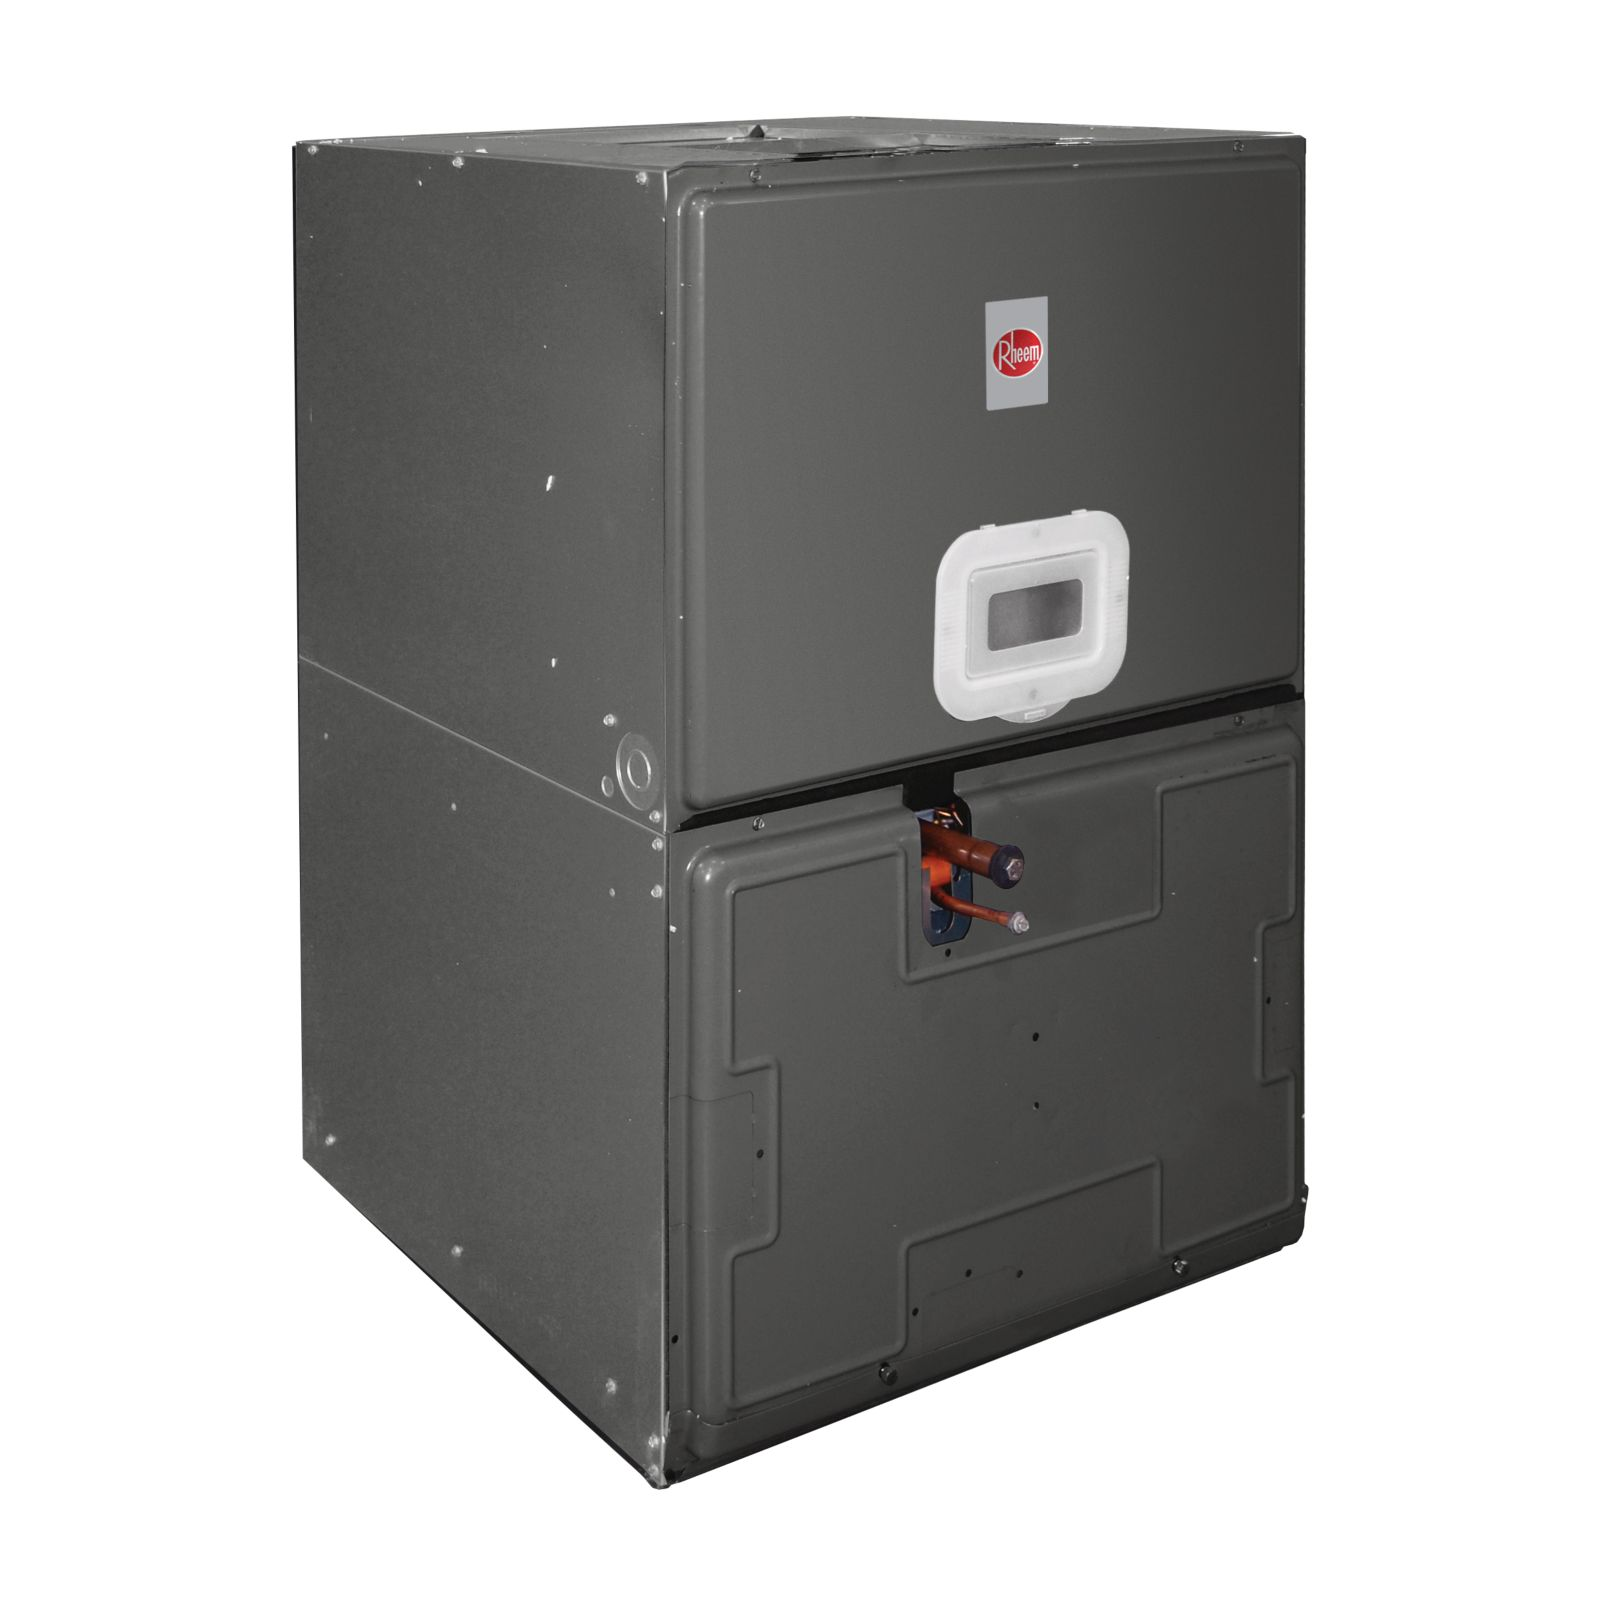 Rheem RBHP-24J11SH4 - RBHP Series - Multiposition Air Handler With X-13 (ECM) Motor, Up To 16 SEER R410A, 10 KW Electric Heat